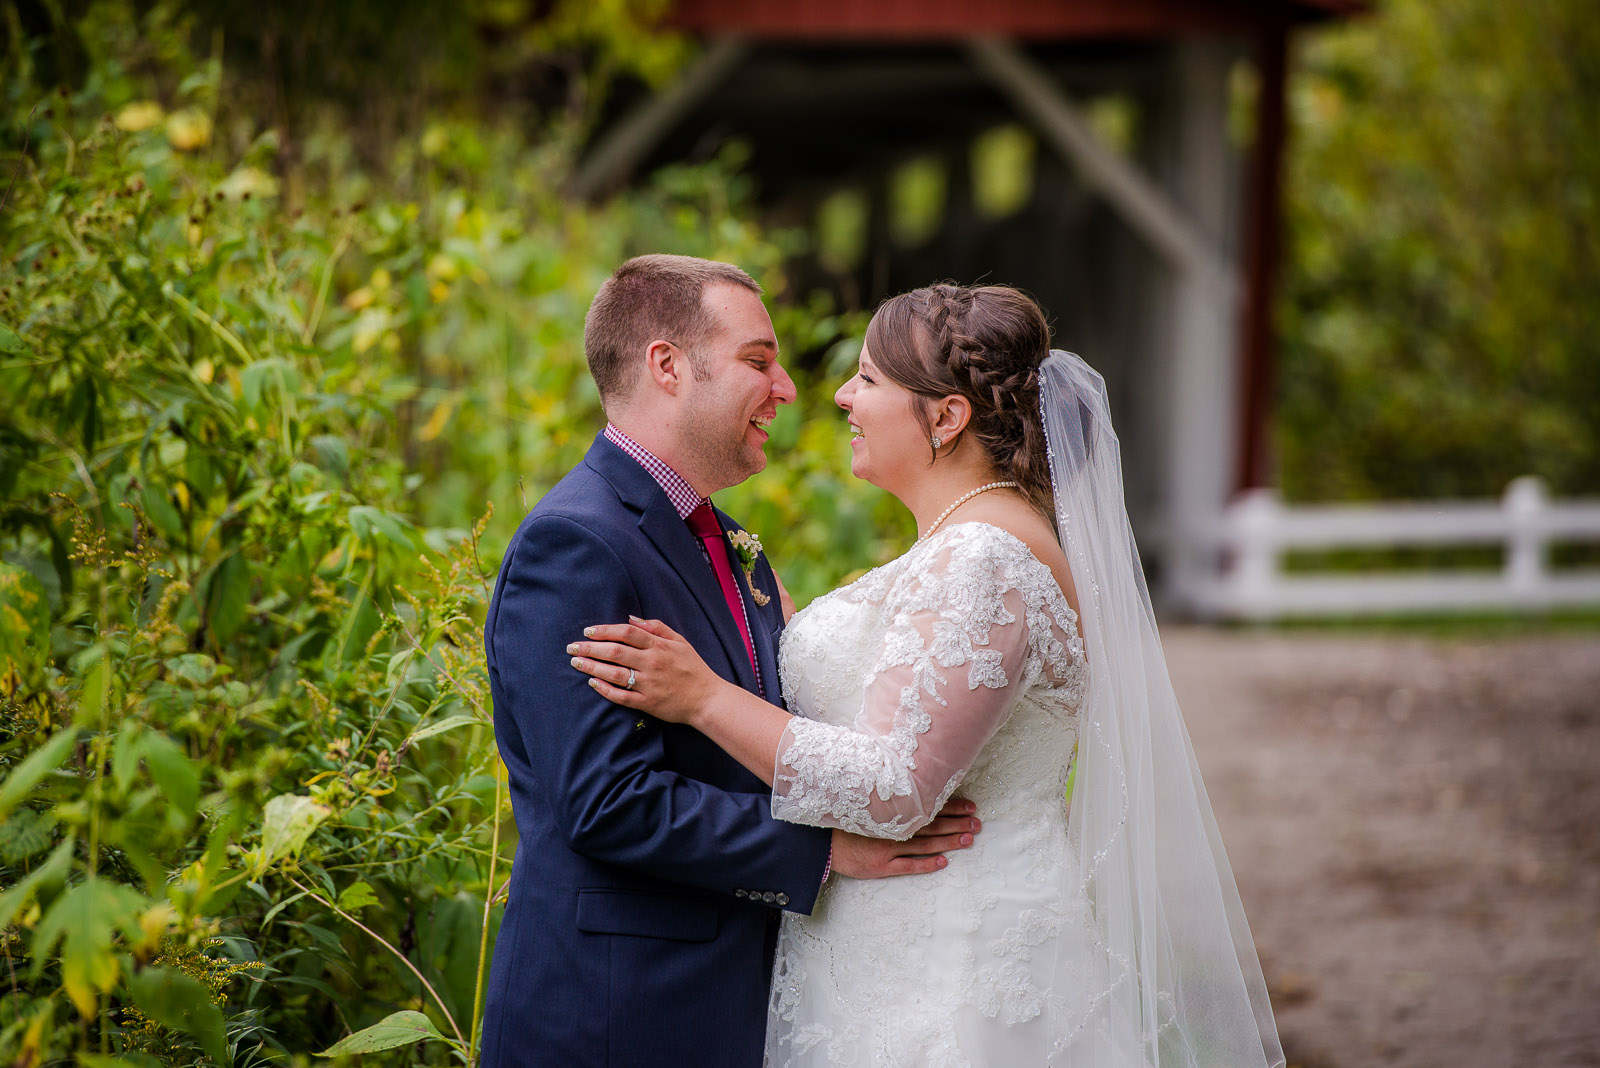 Eric_and_Christy_Photography_Blog_Wedding_Stacey_Geoff-48